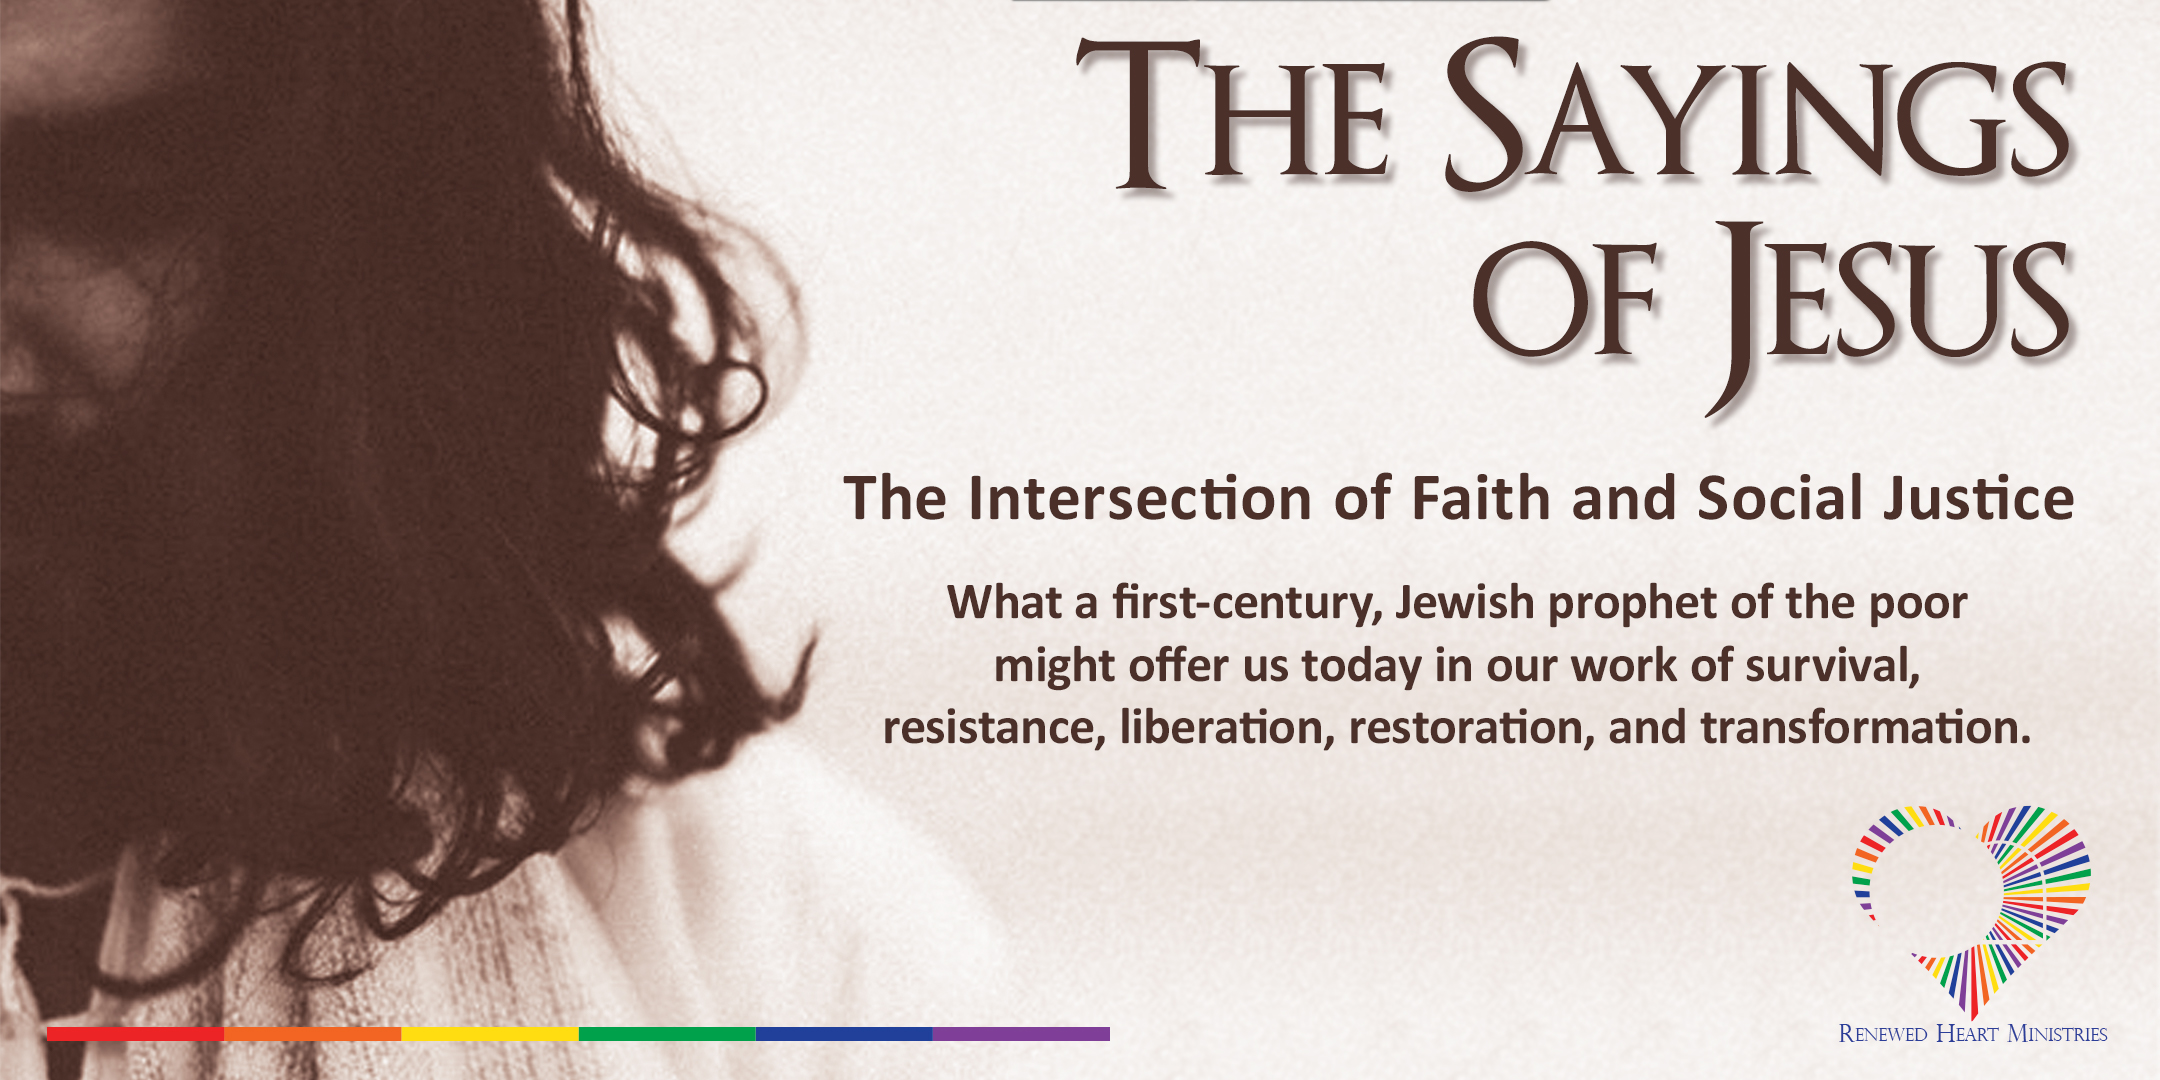 Sayings of Jesus graphic and description